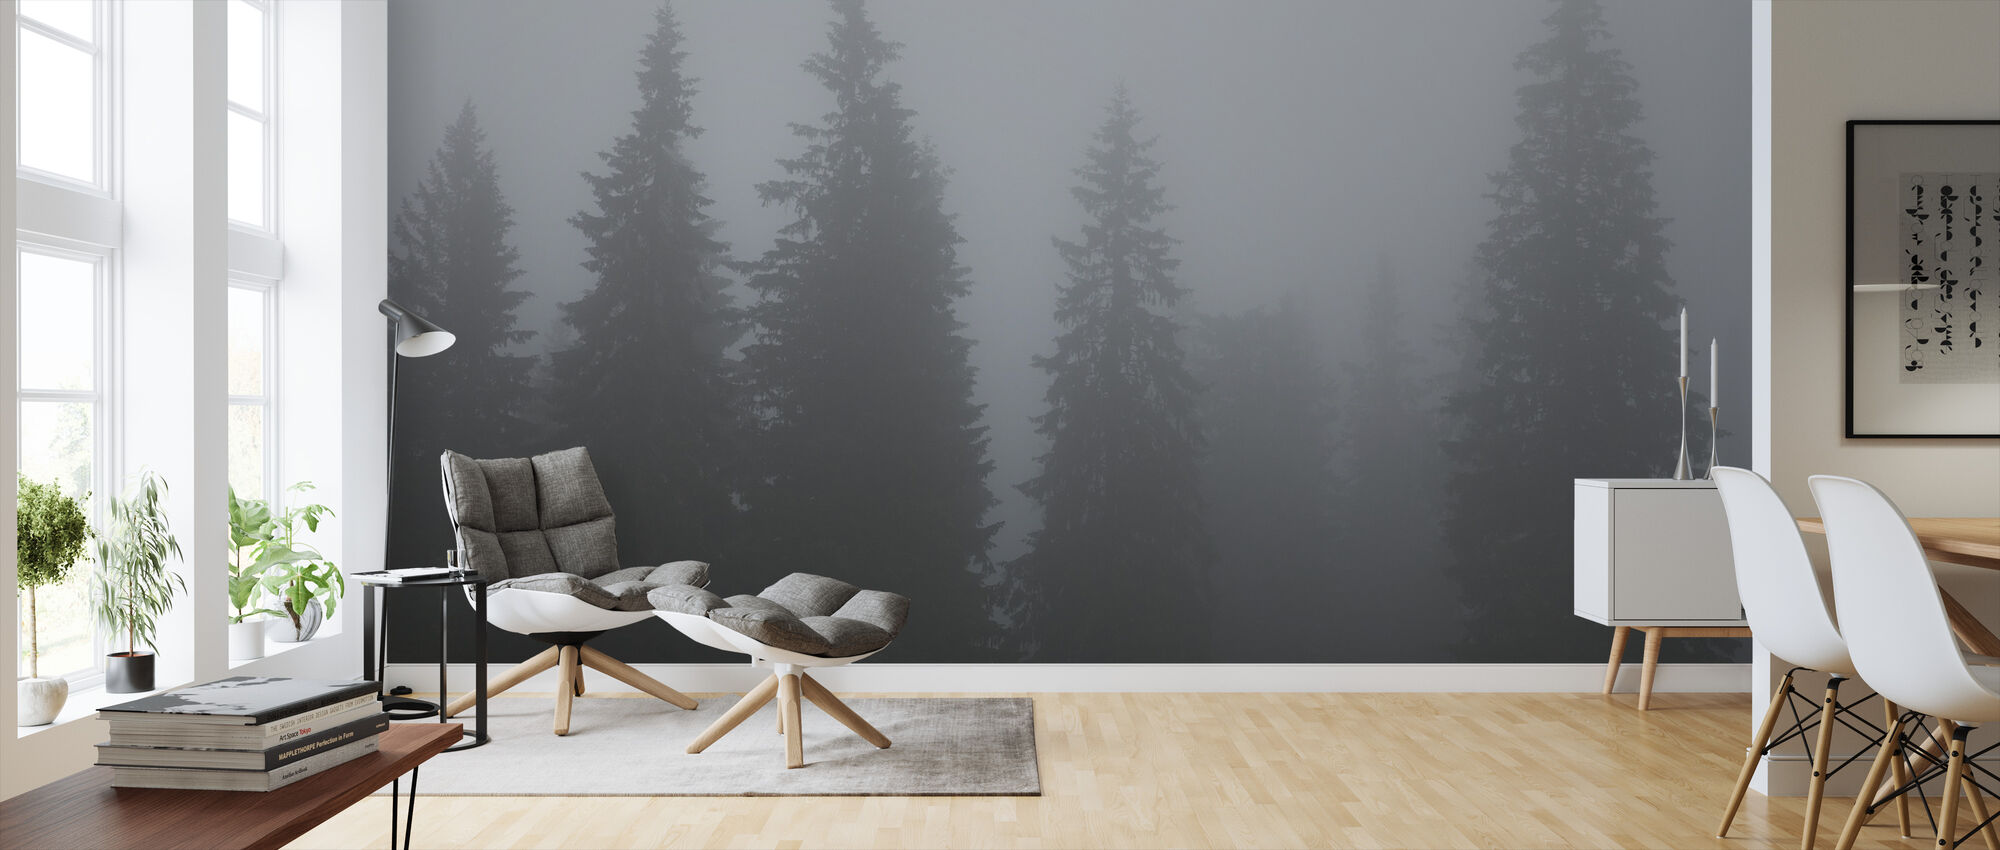 Fir Trees in Furudal, Sweden, Europe - Wallpaper - Living Room